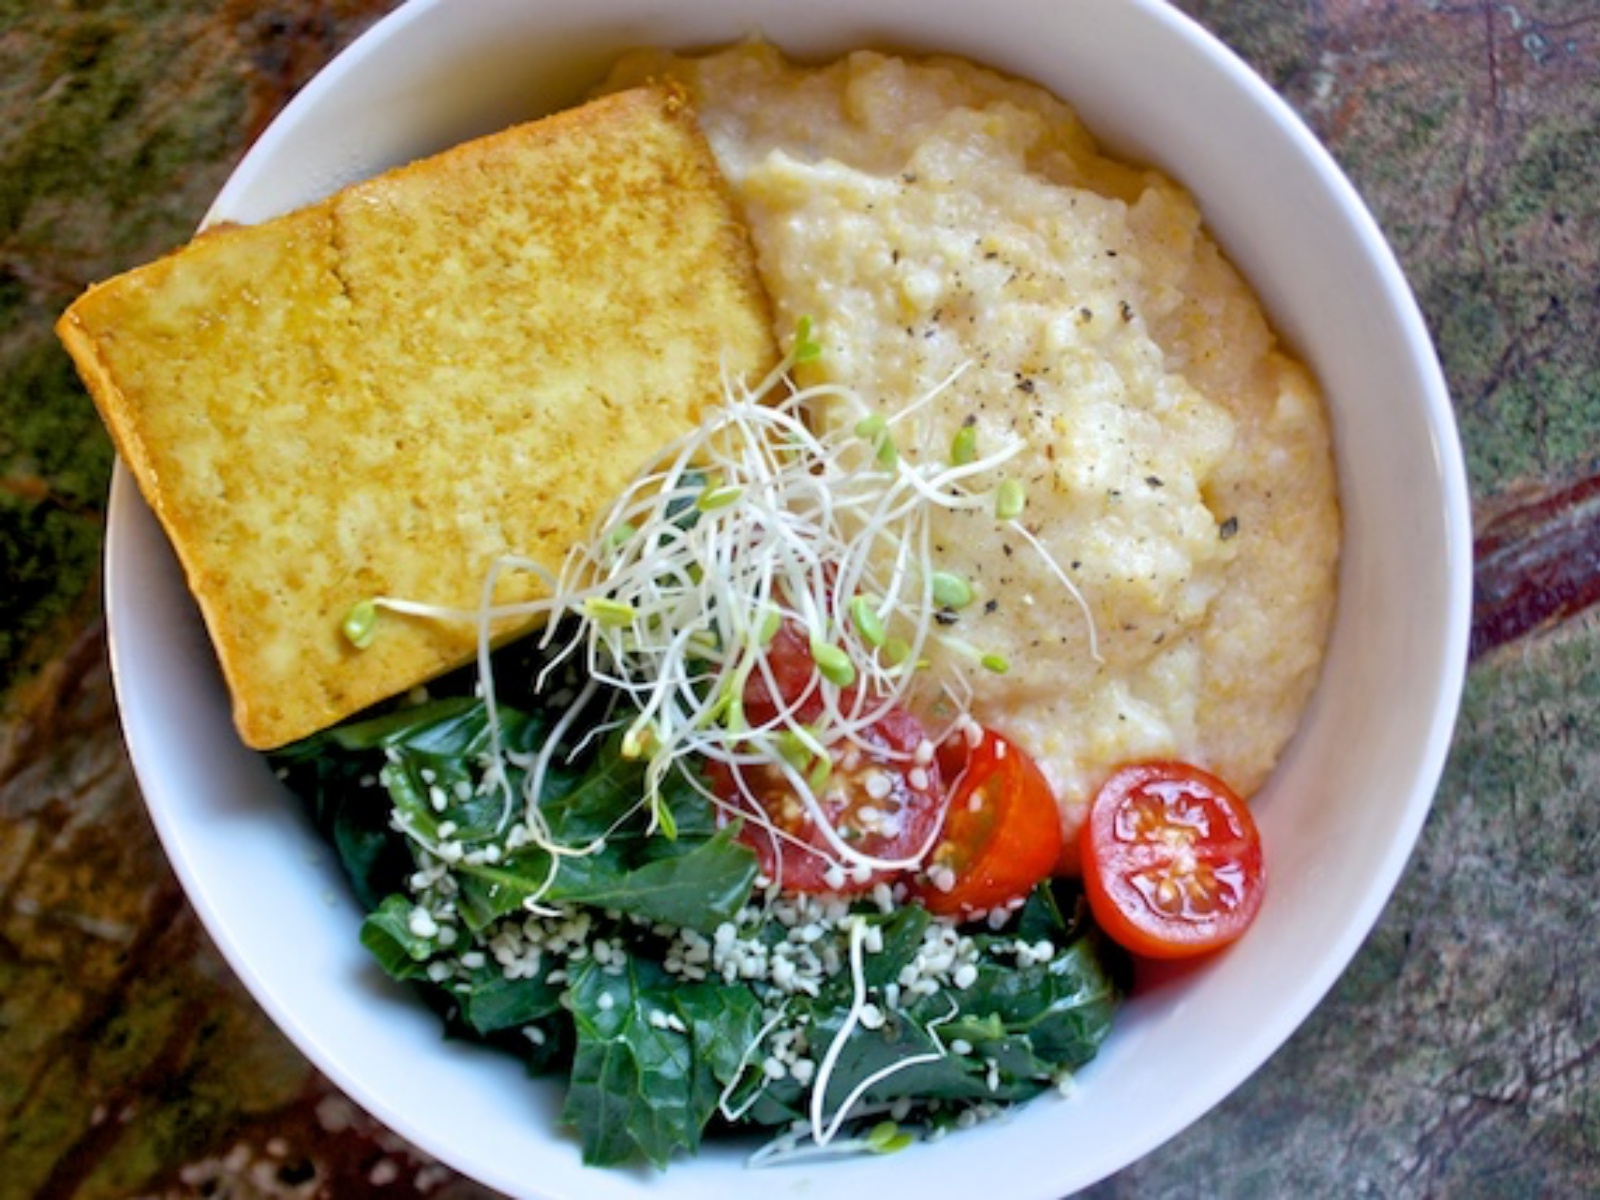 Breakfast Bowl with polenta, tofu, greens, and tomatoes